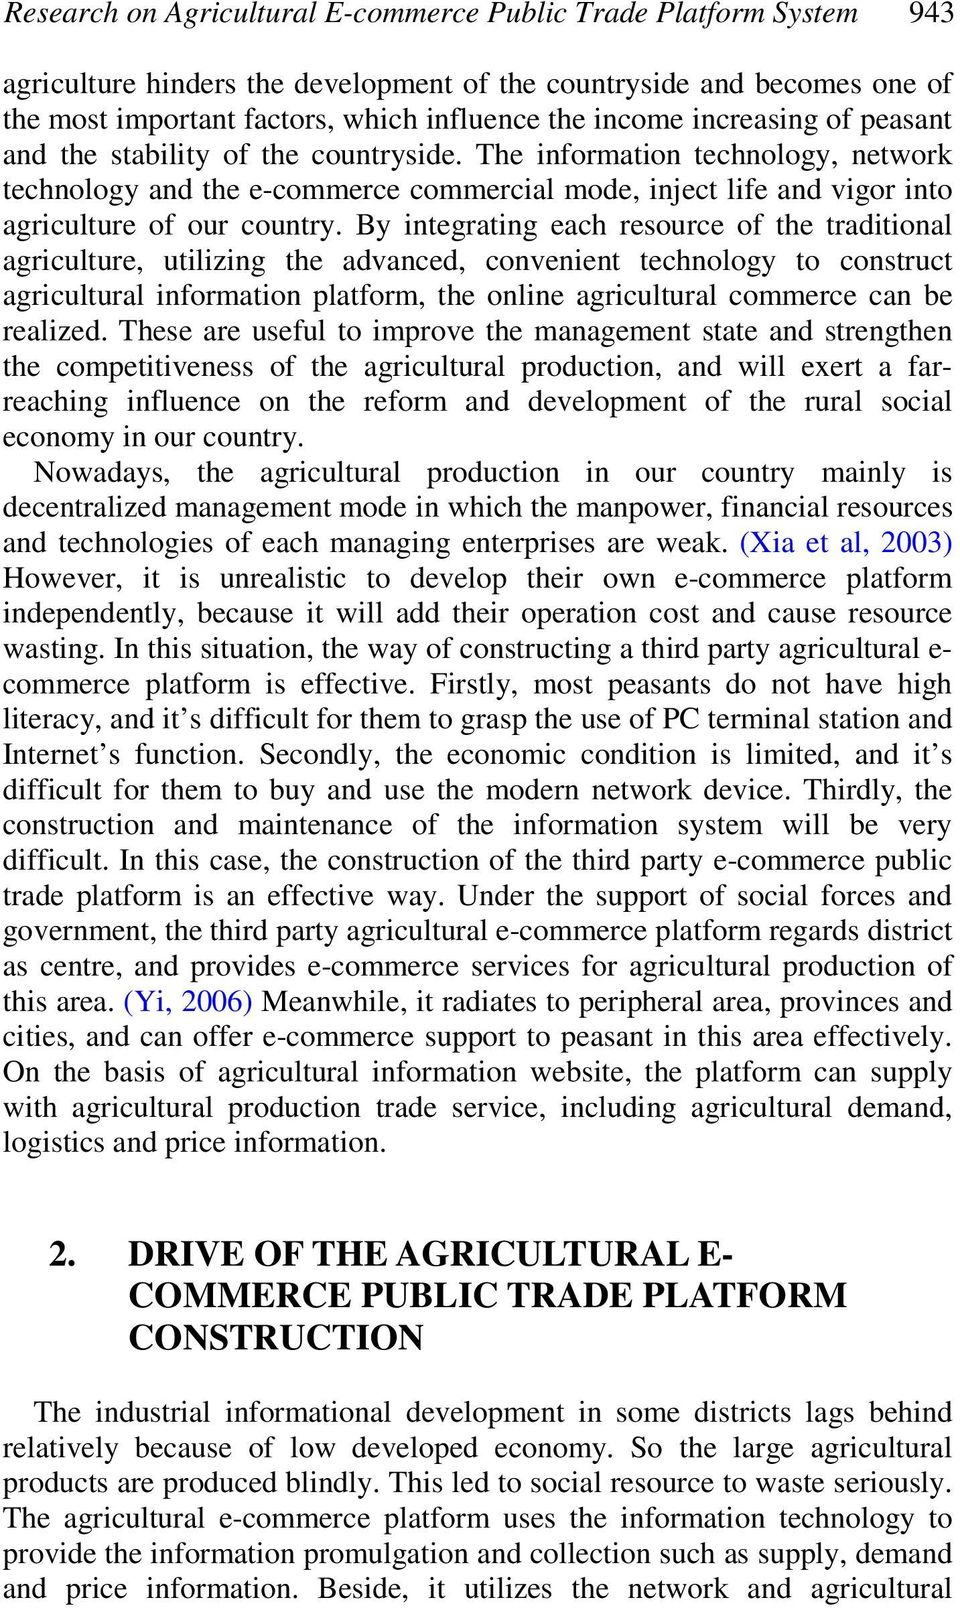 By integrating each resource of the traditional agriculture, utilizing the advanced, convenient technology to construct agricultural information platform, the online agricultural commerce can be